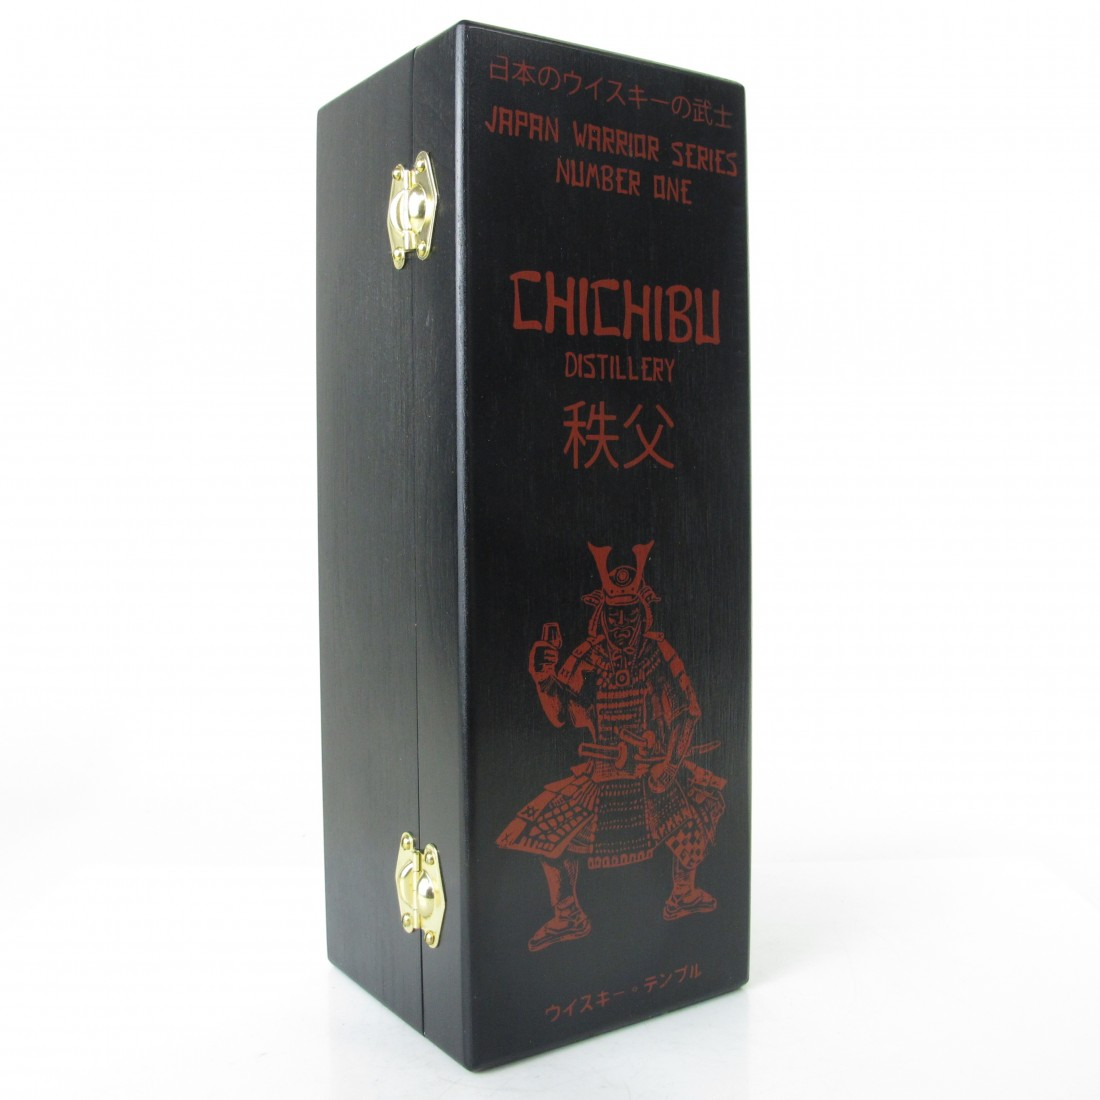 Chichibu 2009 Single Cask #2369 / Warrior Series No. 1